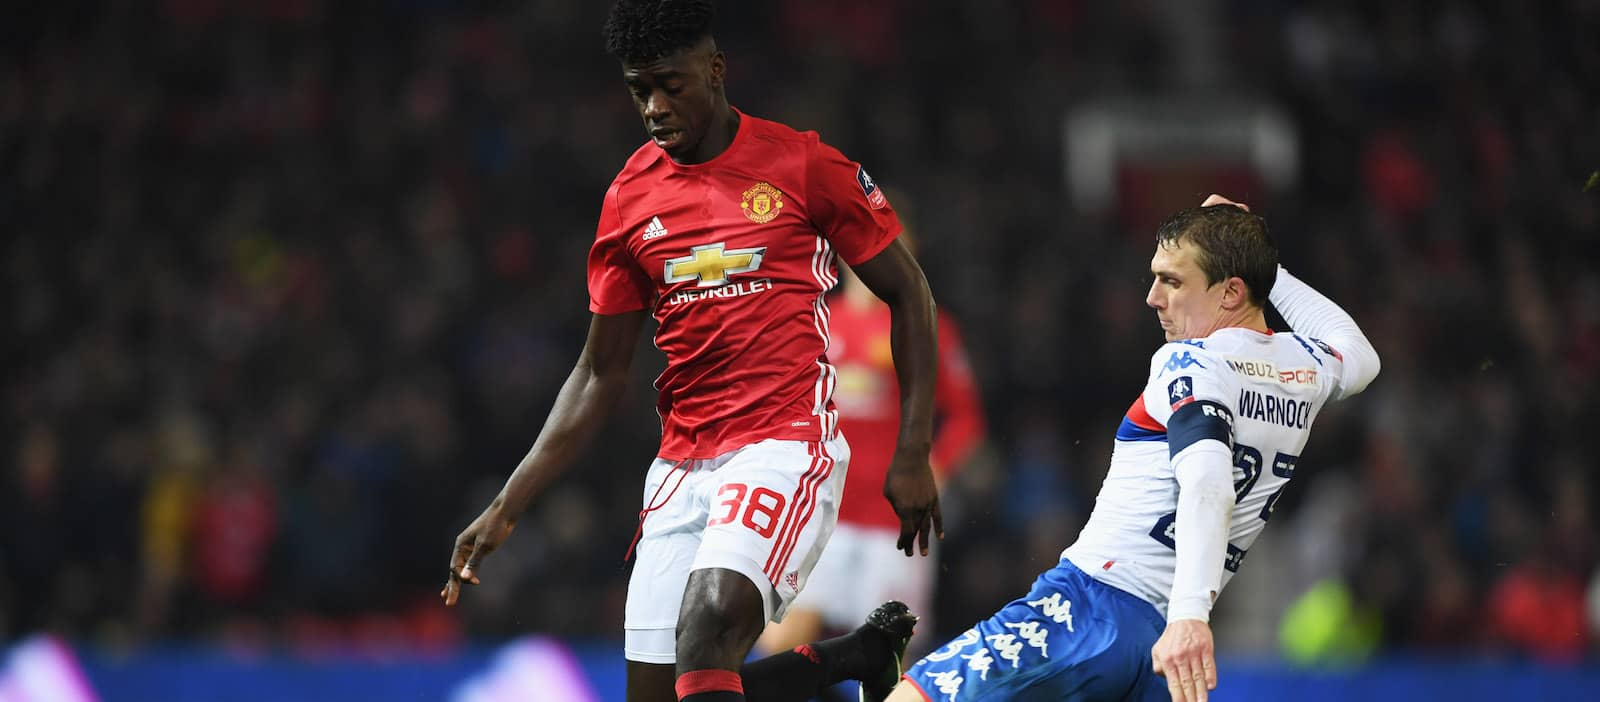 Axel Tuanzebe signs new Manchester United contract